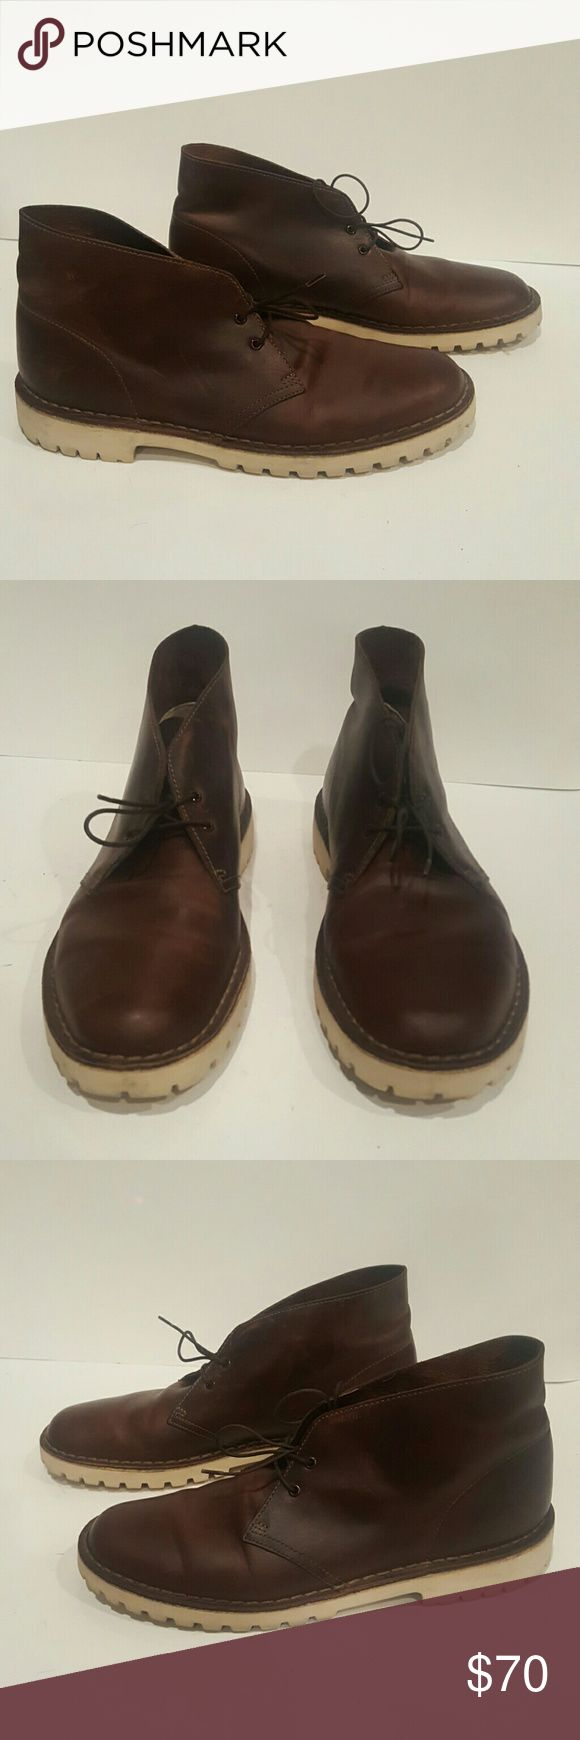 CLARKS ORIGINALS SIZE 9.5 BROWN LEATHER BOOTS CLARKS MENS SIZE 9.5 BROWN LEATHER  DESERT BOOTS WHITE LUG SOLES EUC WORN 3 TIMES Clarks Shoes Chukka Boots